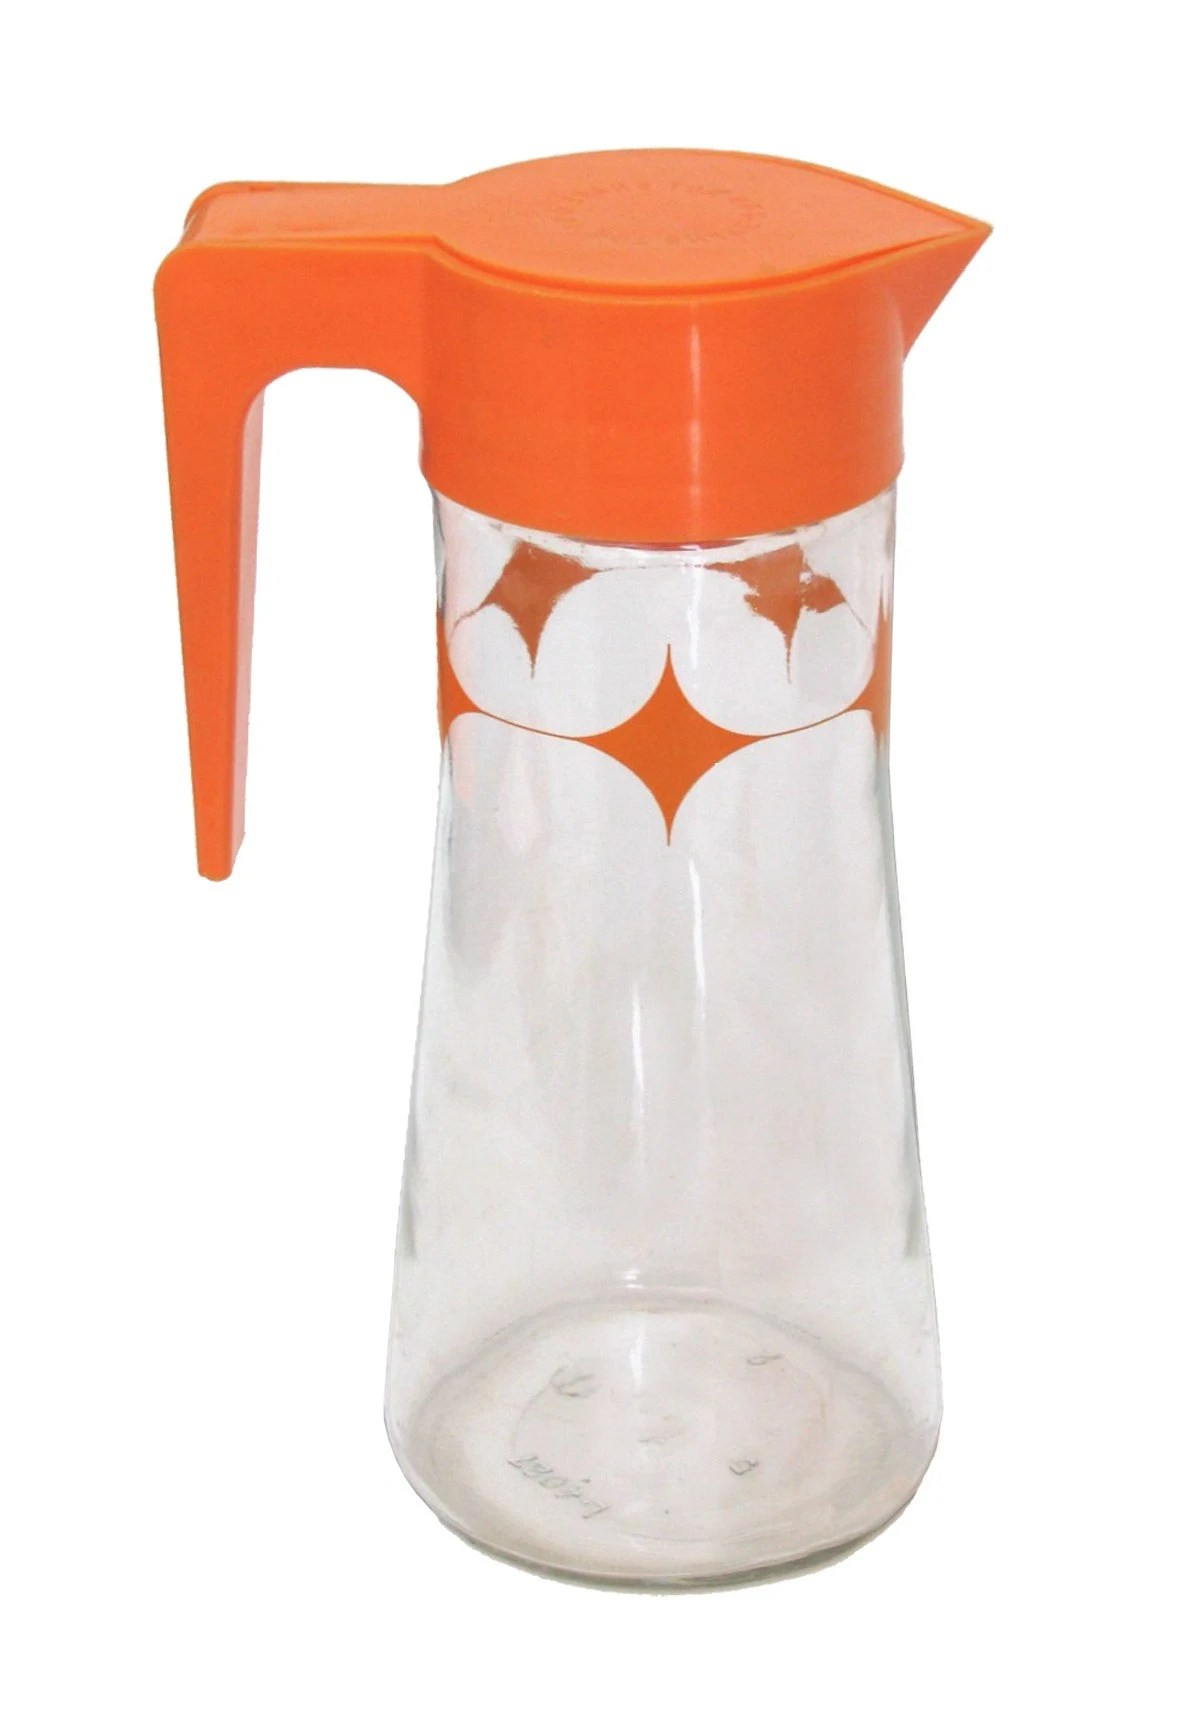 RETRO vintage PITCHER summmer FUN Anchor Hocking SUMMERTIME LEMONADE or ICED TEA or Tang pitcher carafe ORANGE juice kitchen serve entertain cheap collection